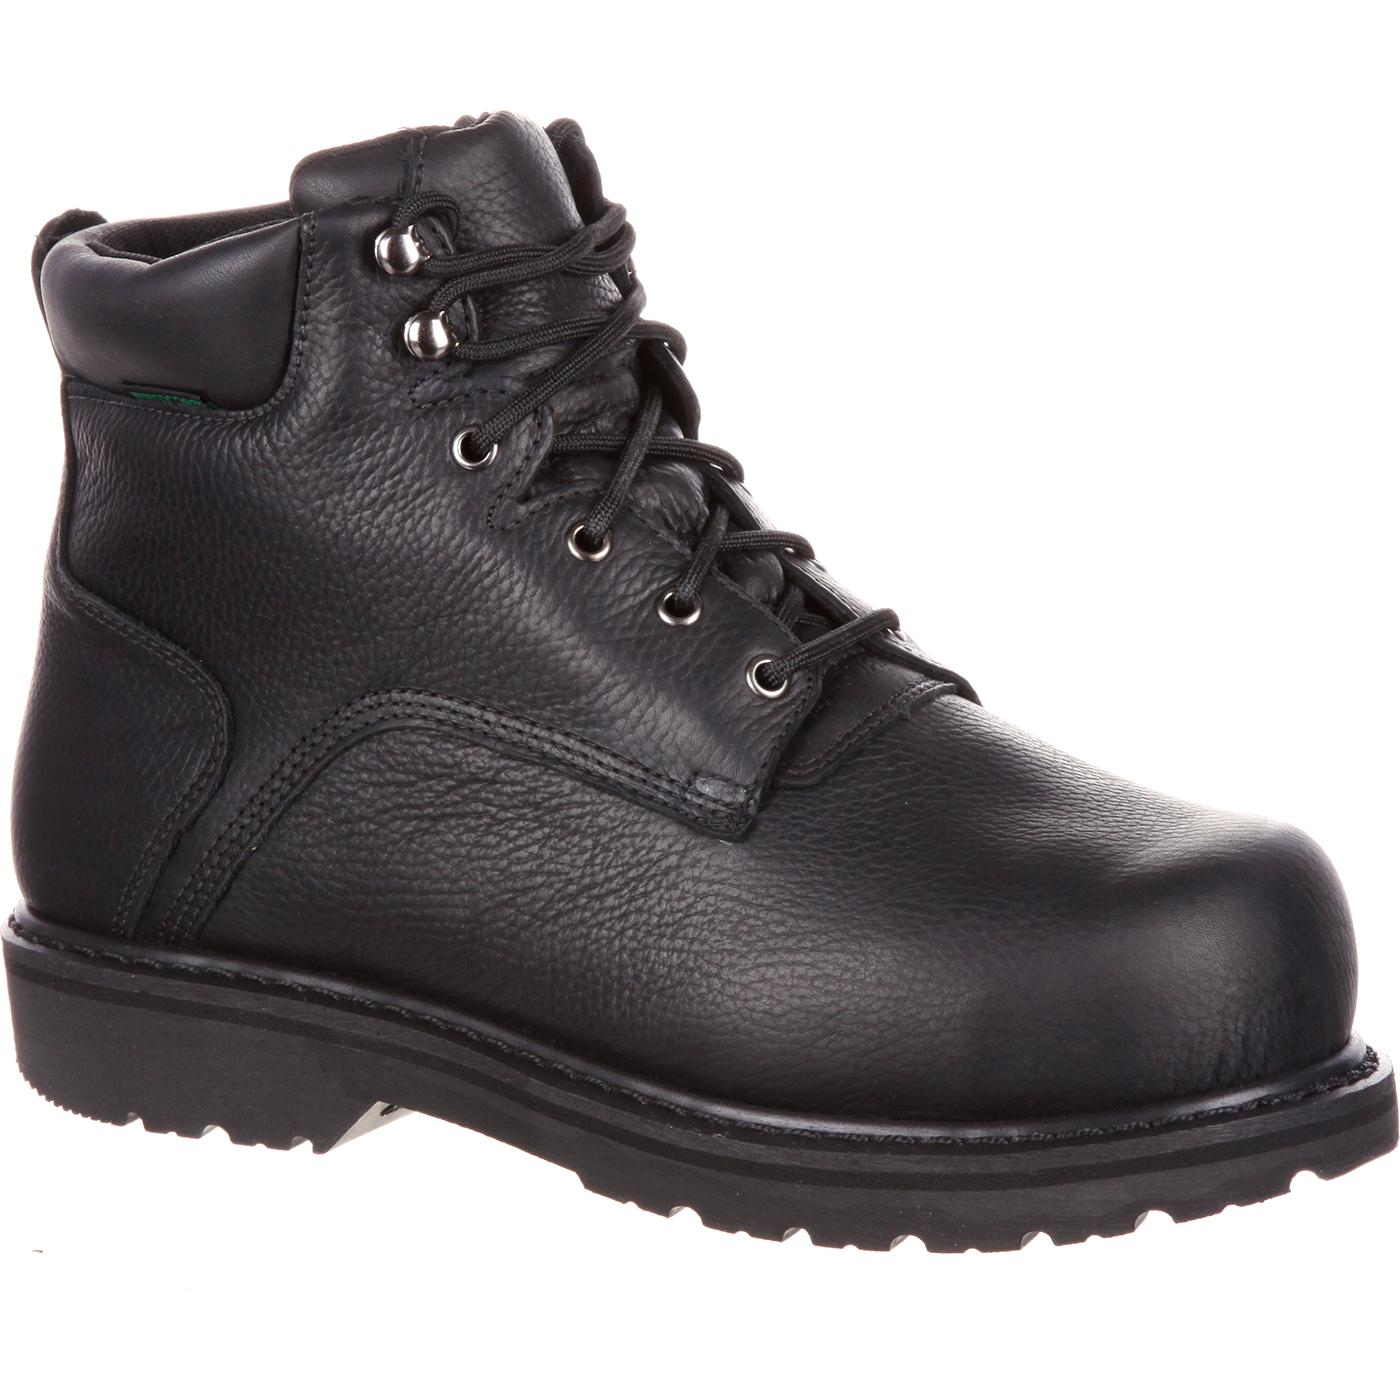 0ad7313bb3df1e QUICKFIT Collection: Lehigh Safety Shoes Unisex Steel Toe Met Guard  Waterproof Work BootQUICKFIT Collection: Lehigh Safety Shoes Unisex Steel  Toe Met Guard ...